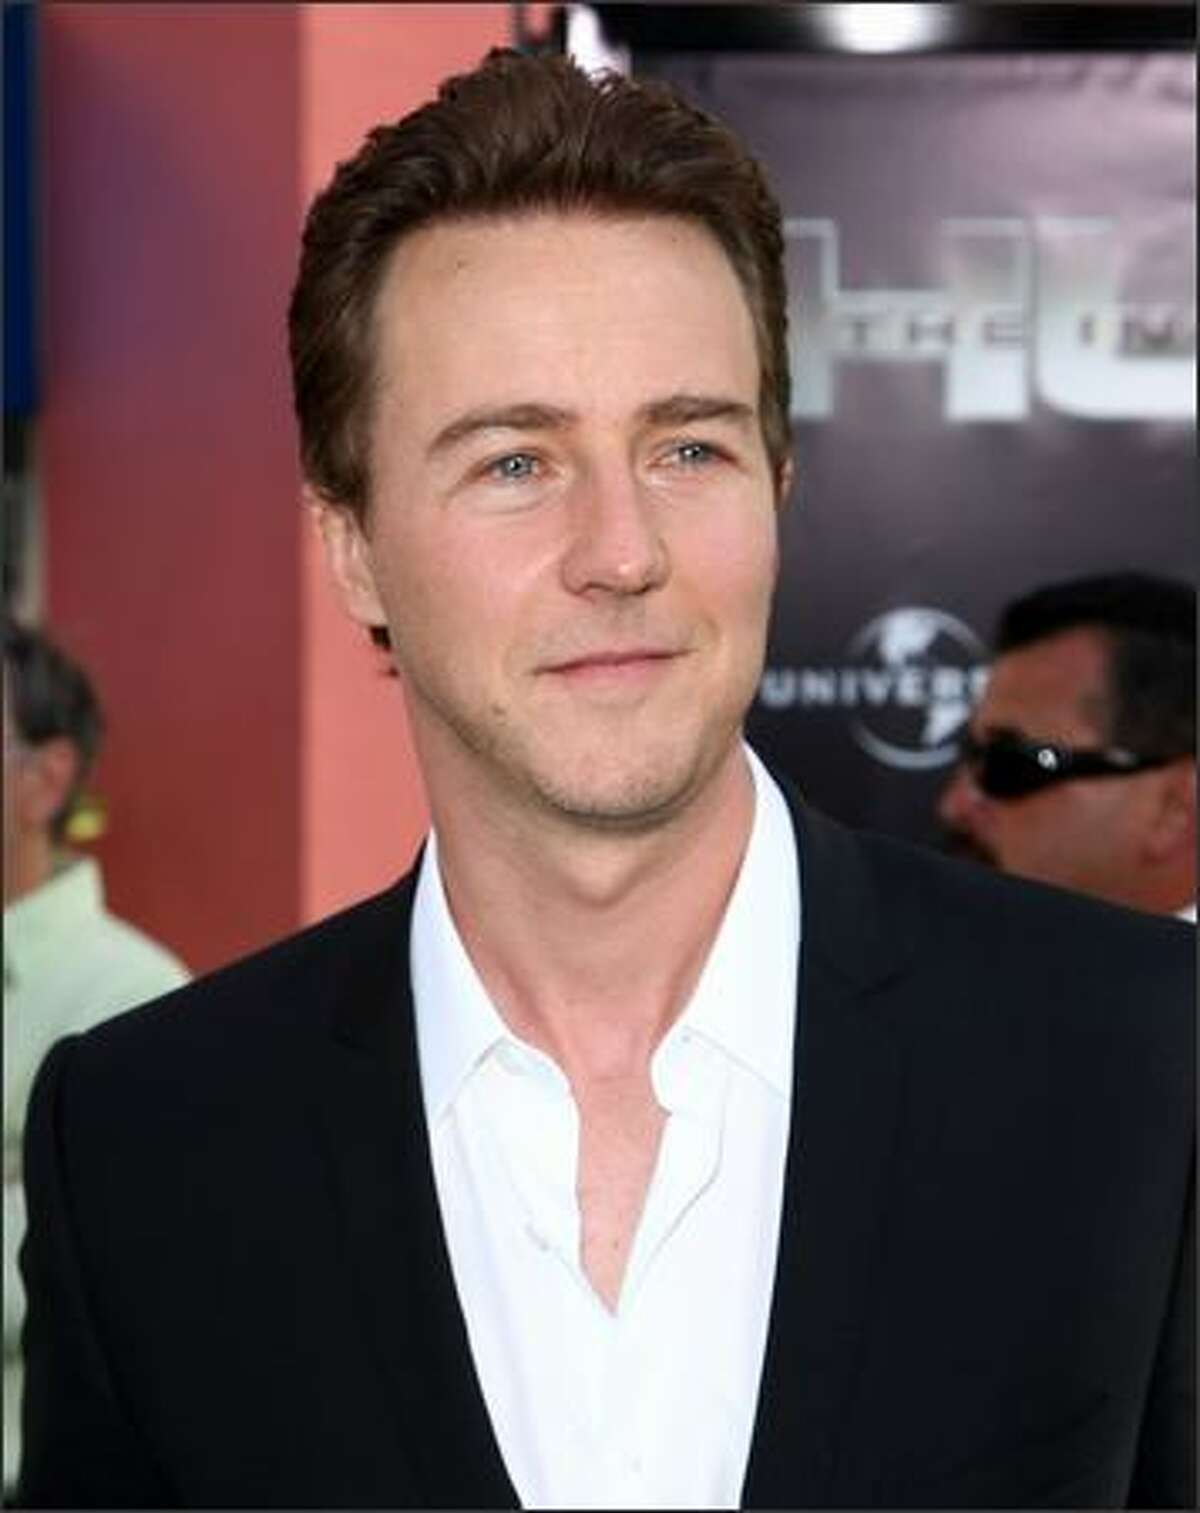 Actor Edward Norton arrives at the premiere of Universal Pictures'